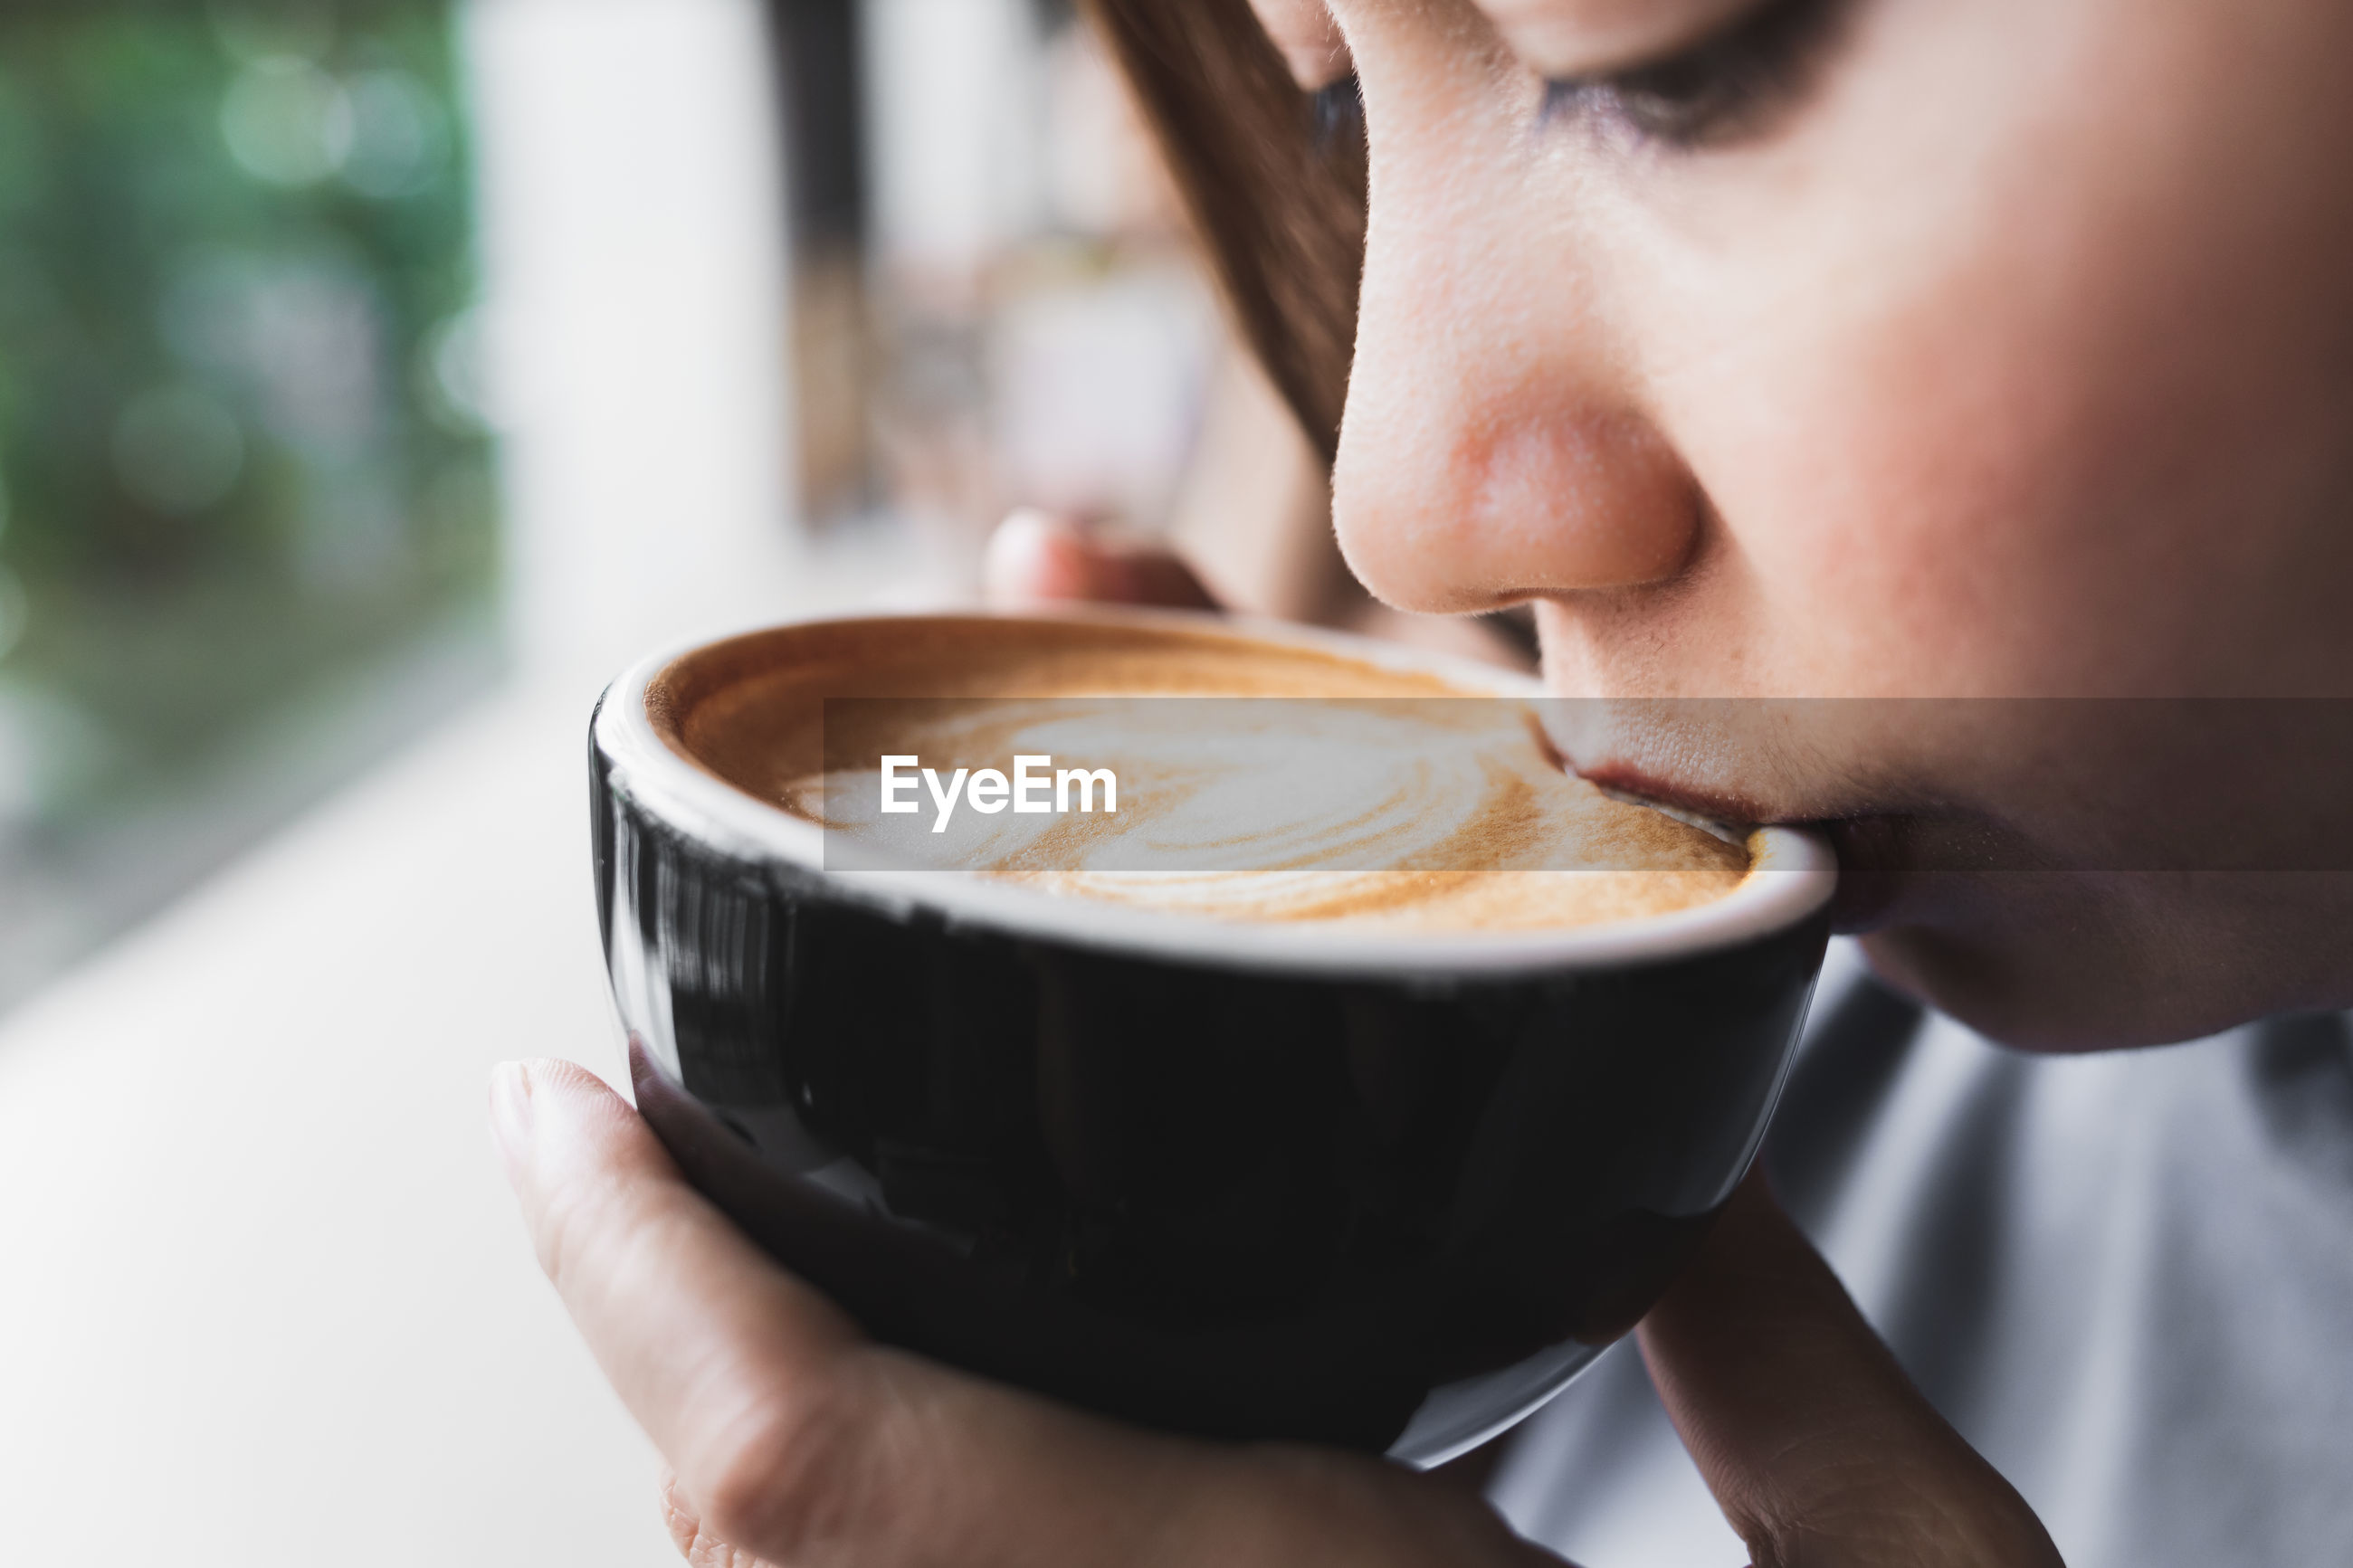 Close-up of woman drinking coffee at cafe